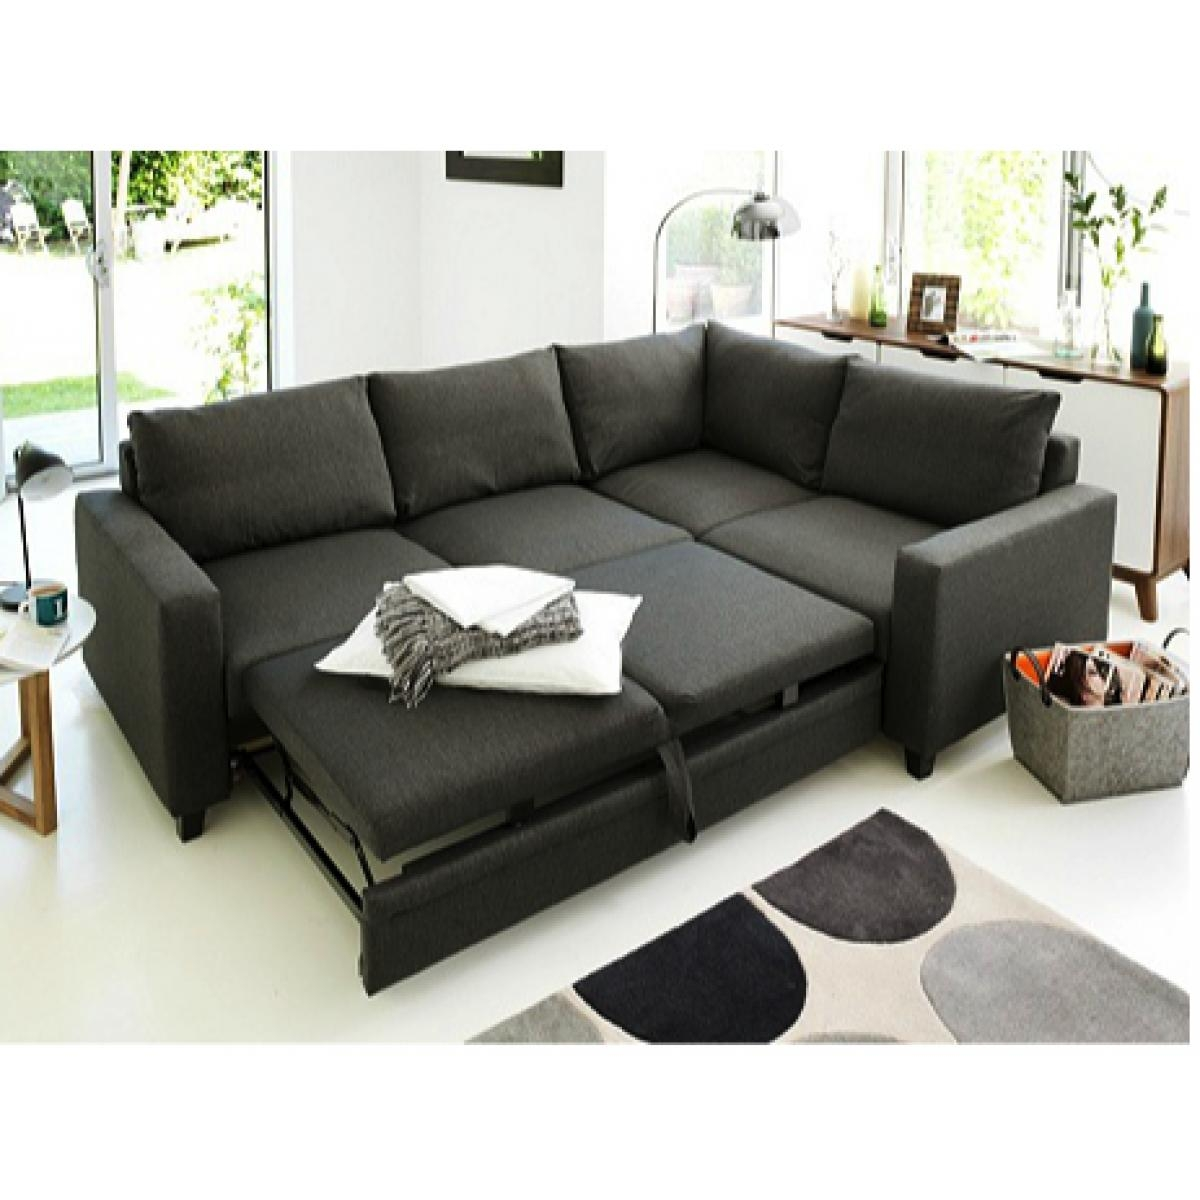 20 Photos Cheap Corner Sofa Bed